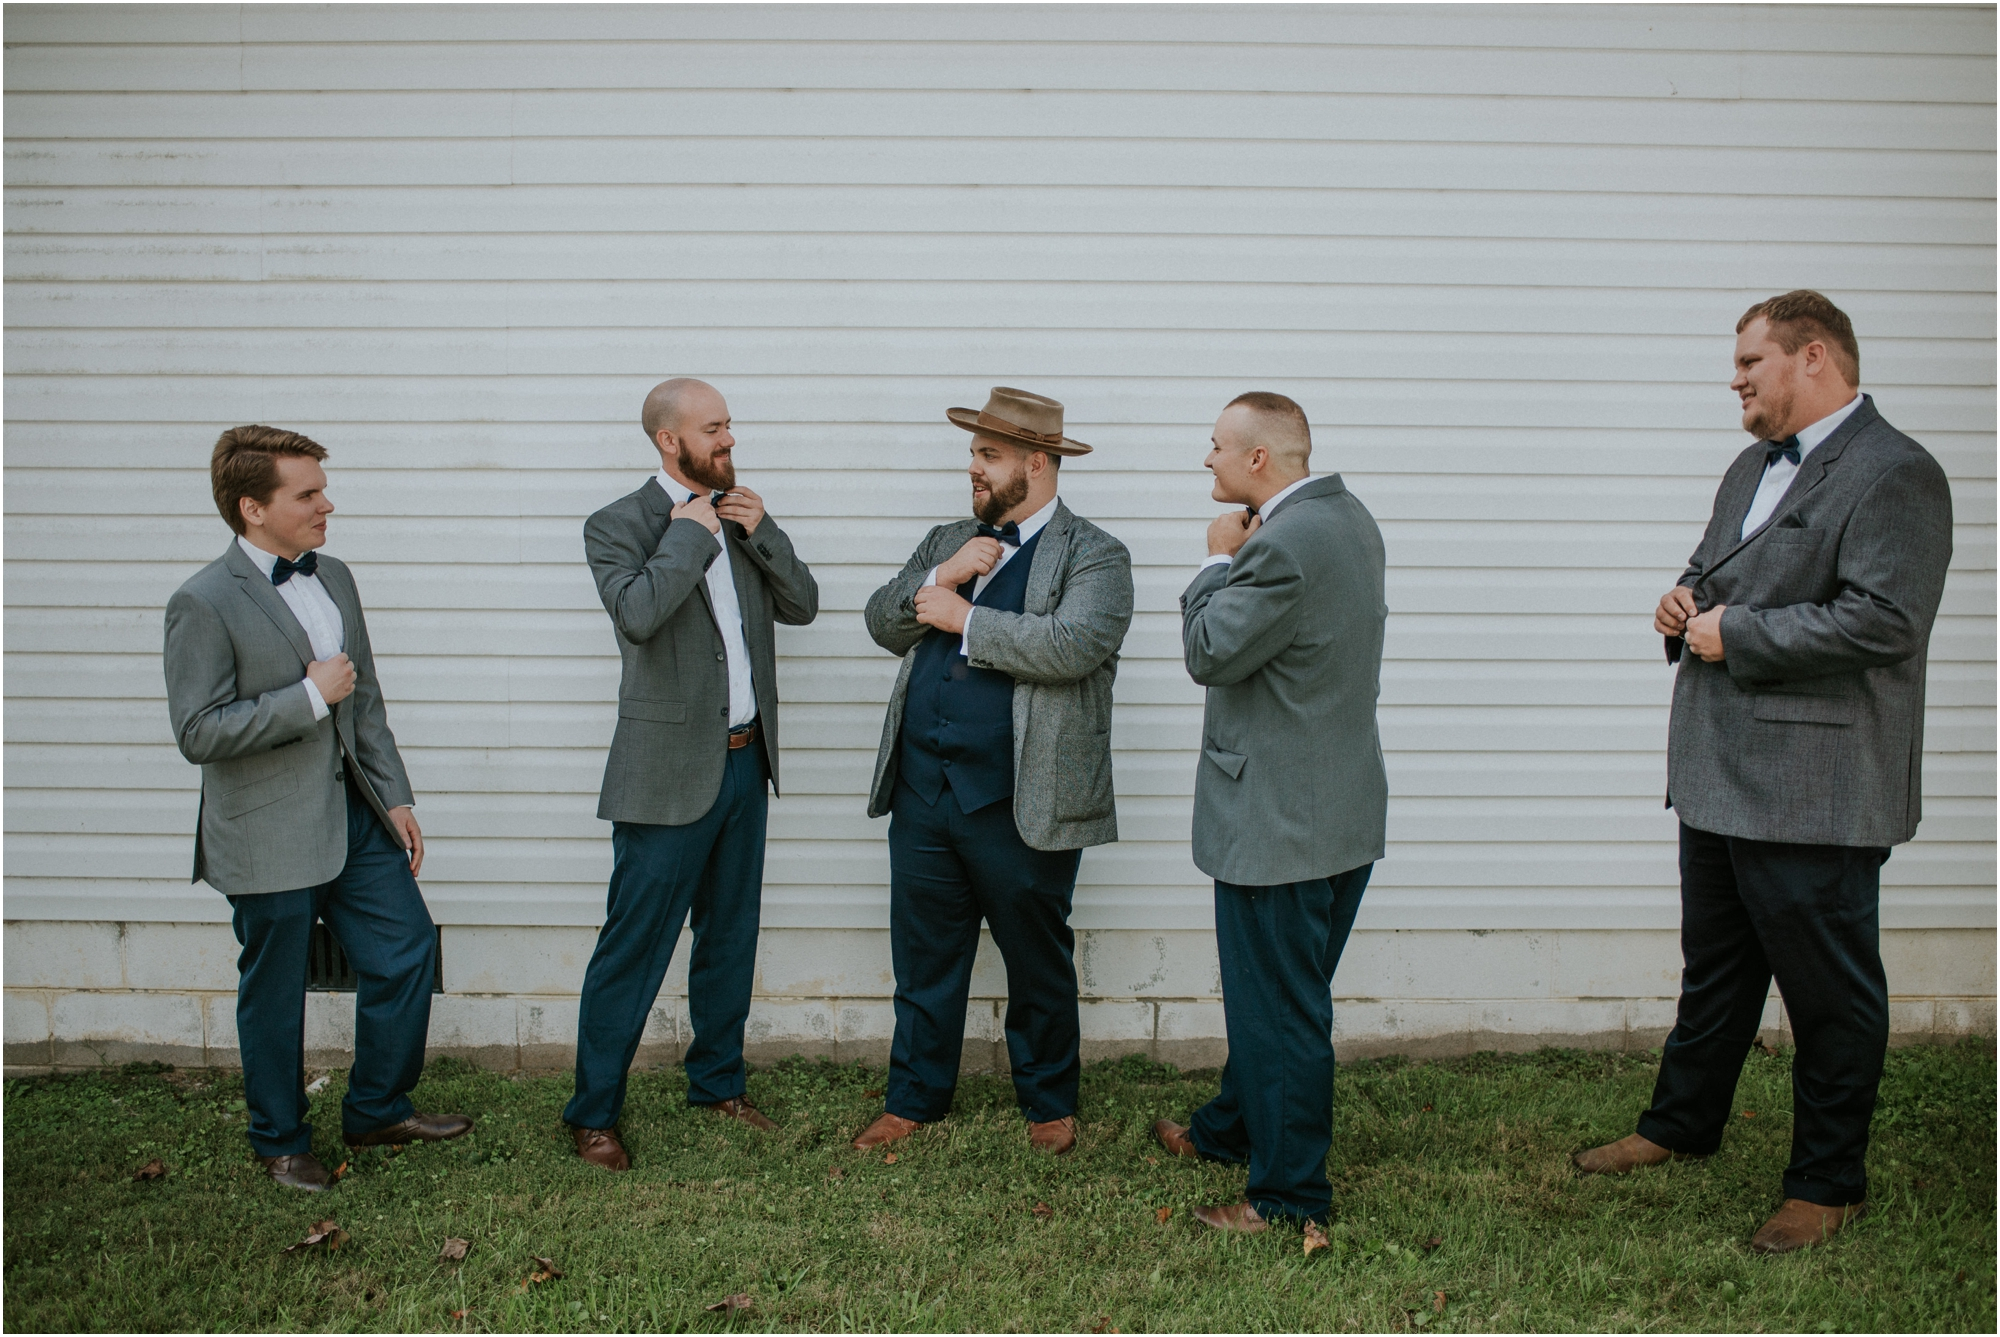 caryville-robbins-middle-tennessee-intimate-cozy-fall-navy-rustic-backyard-wedding_0027.jpg